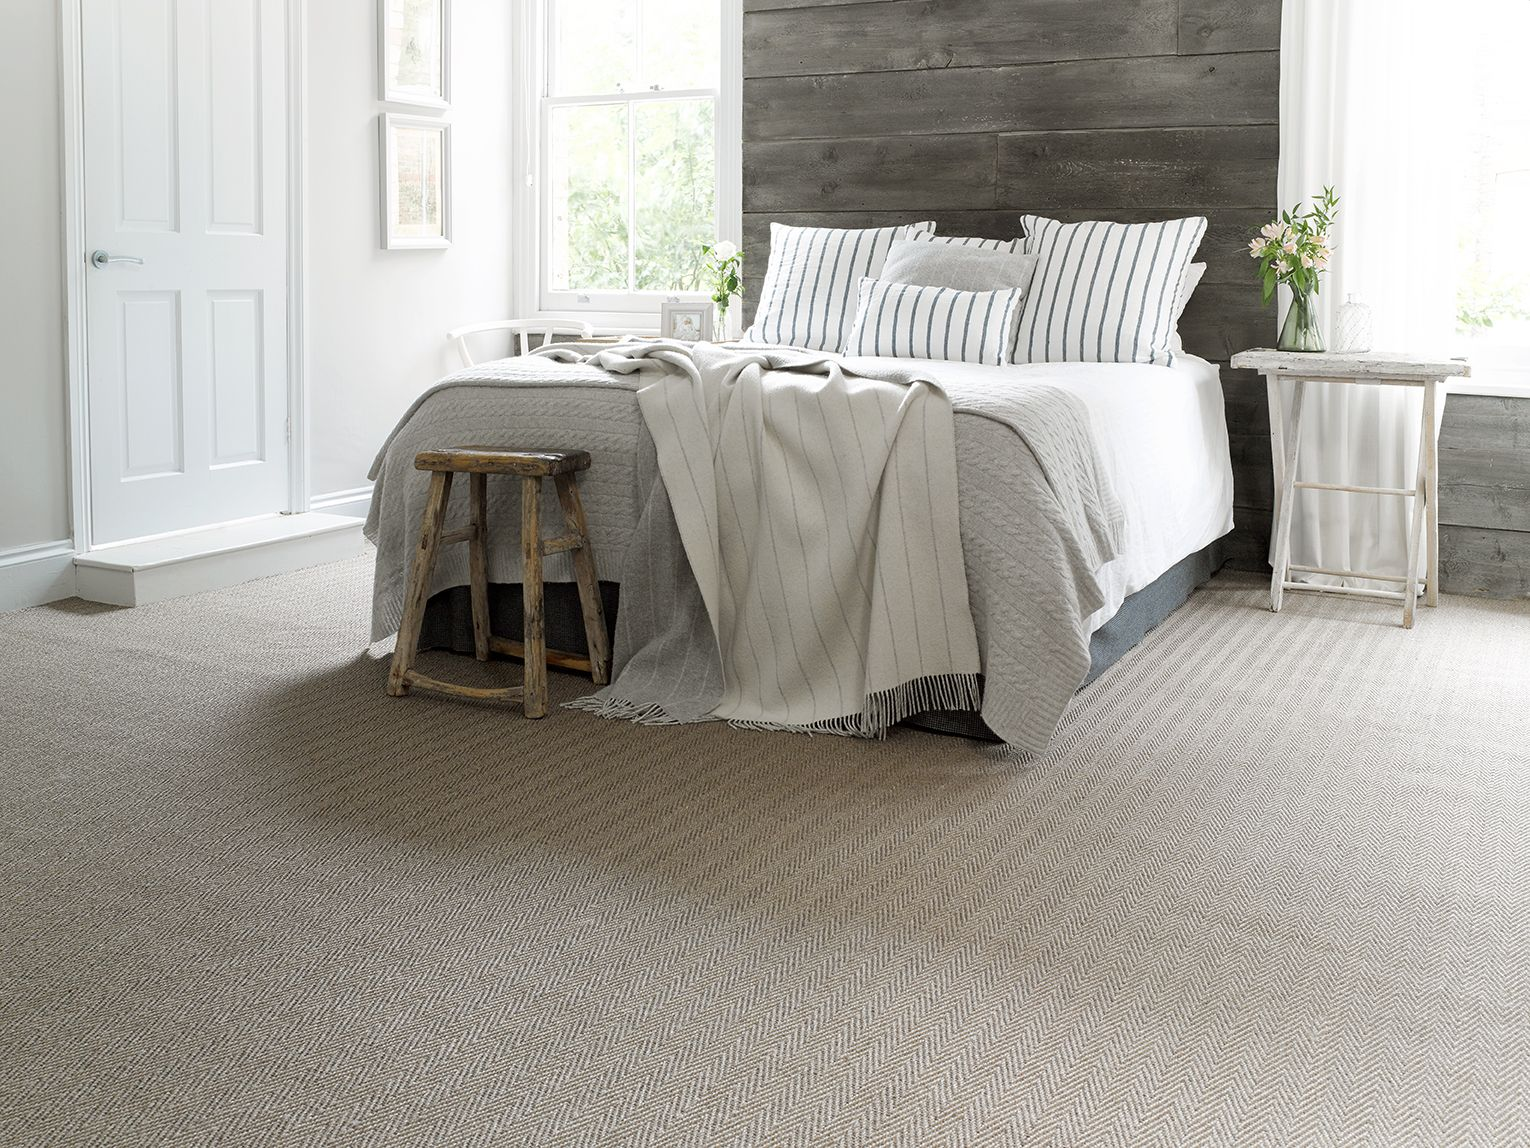 Stone Represents A Step Away From The Norm An Alternative Design Coming In An Alternative Weave Bedroom Flooring Guest Bedroom Home